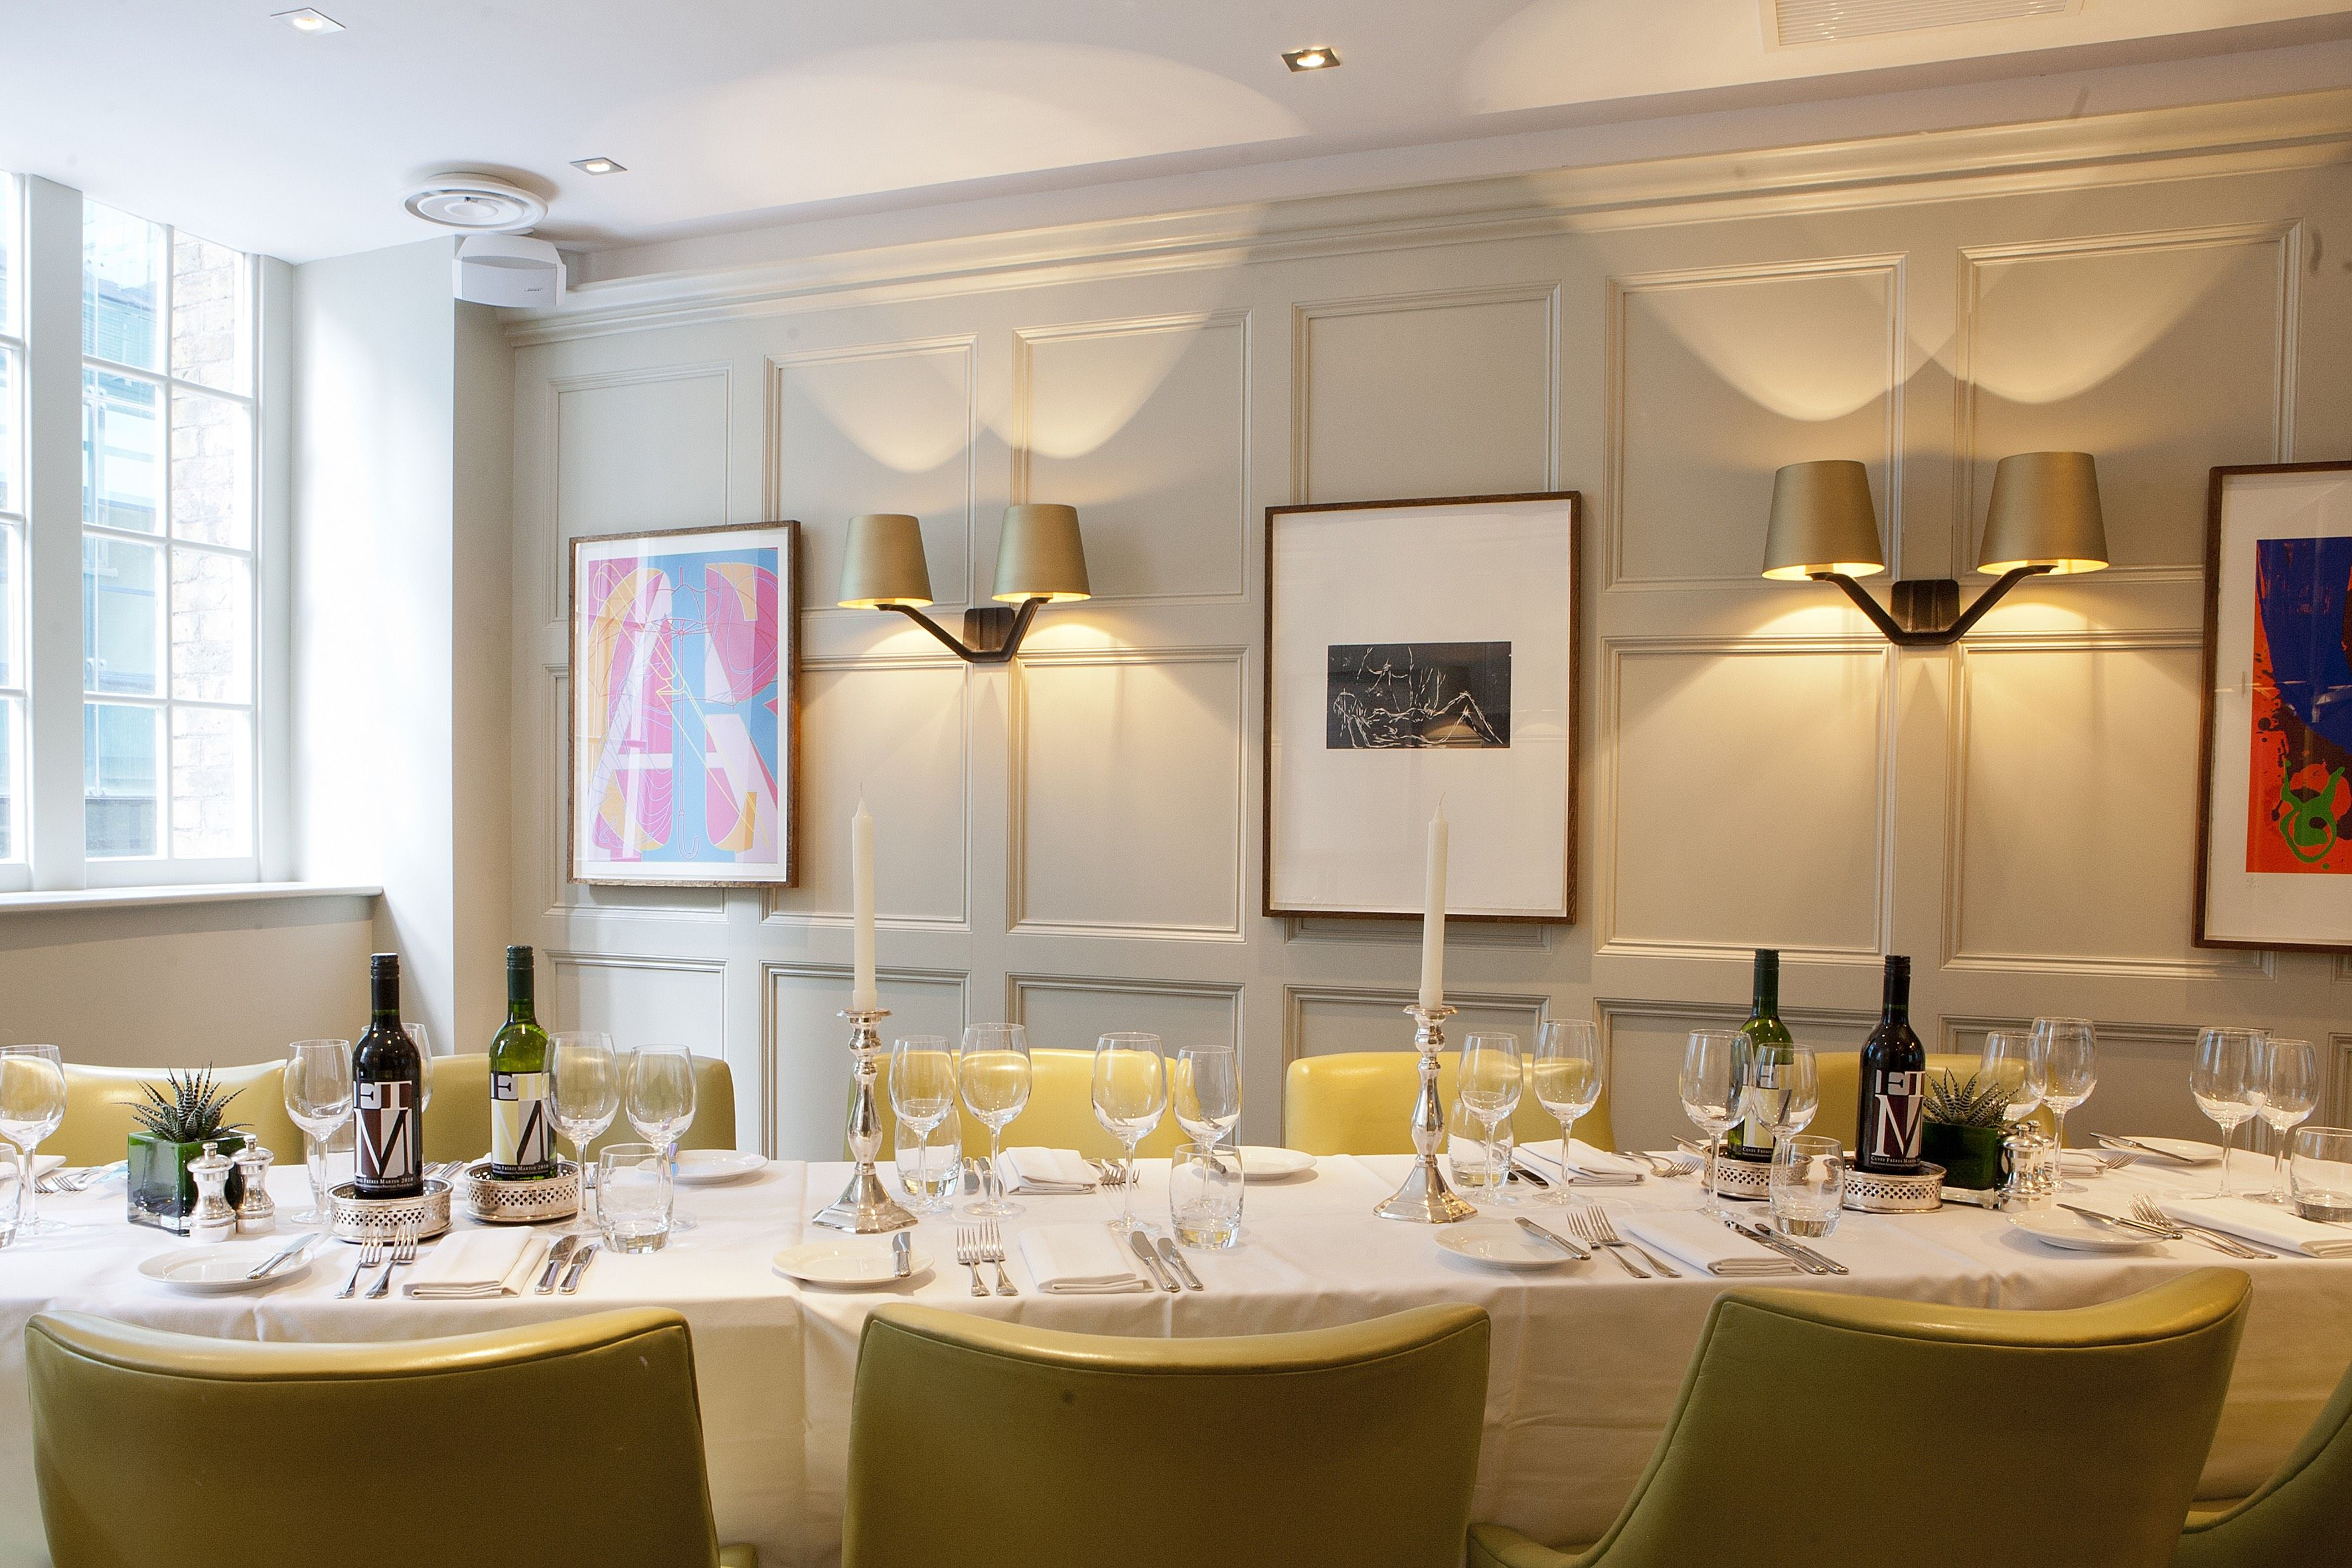 Gallery  Chiswell Street Dining Rooms  Chiswell Street Dining Amazing The Chiswell Street Dining Rooms Design Ideas